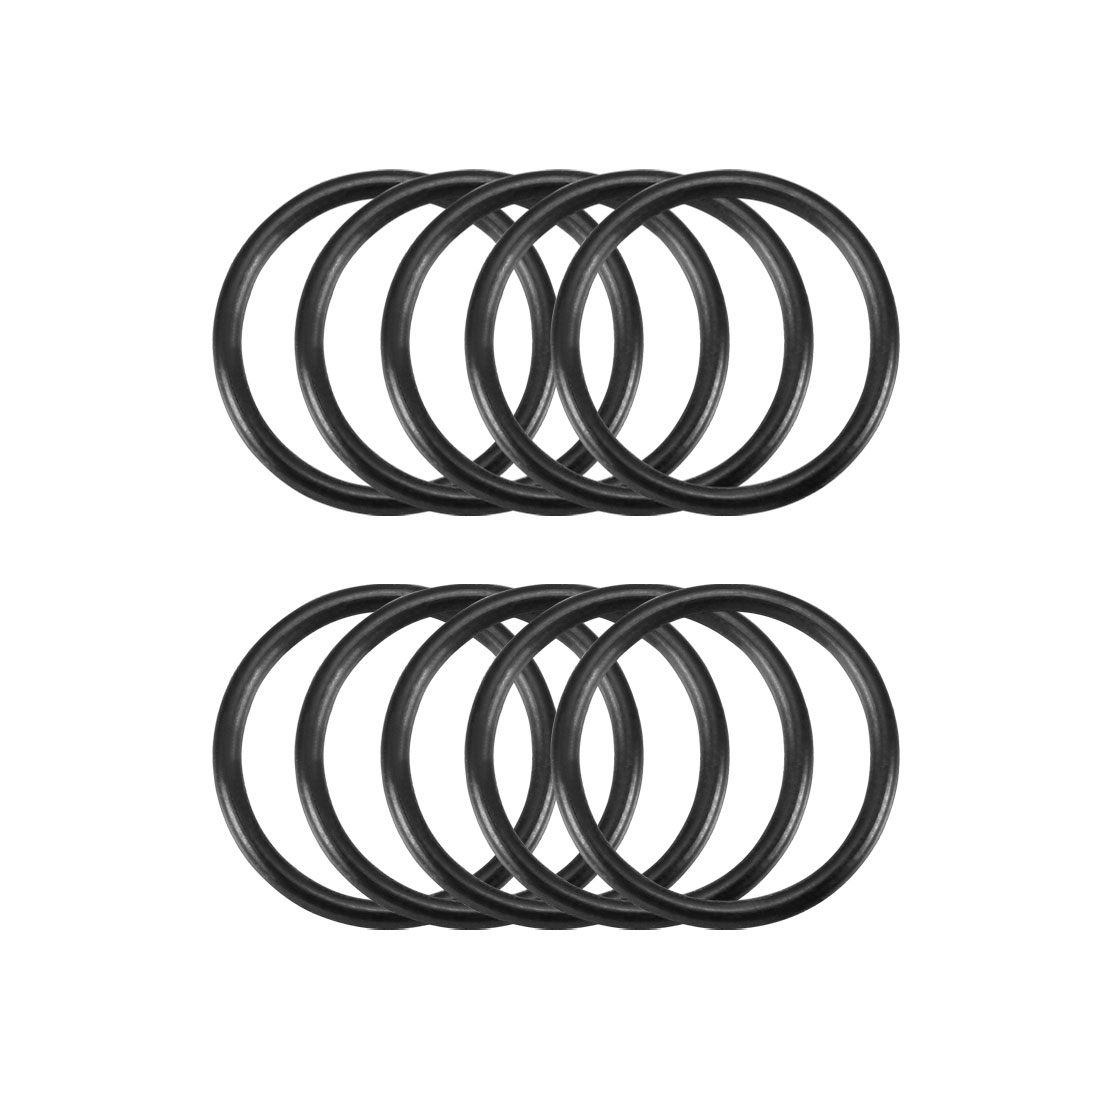 10 Pcs Black Rubber Flexible O Ring Oil Seal Gaskets 17mm x 1.8mm